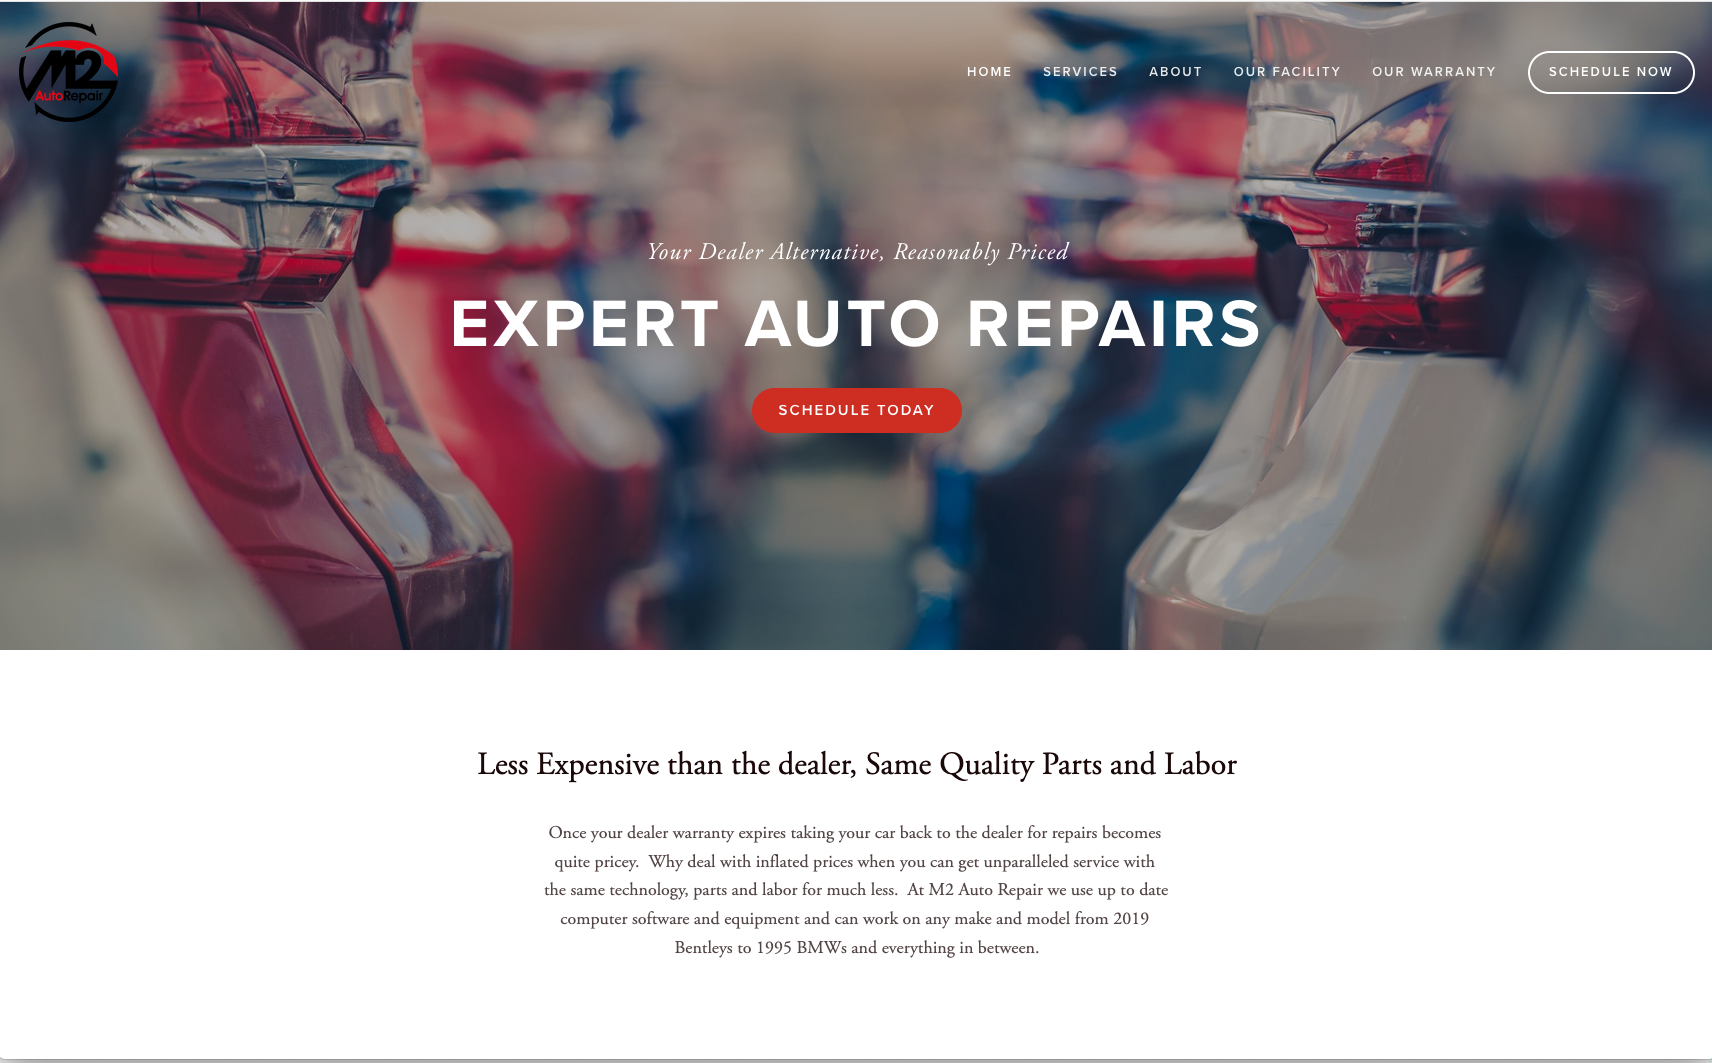 M2 Auto Repair   , A squarespace website overhaul. The client had a squarespace site already that was bare and non cohesive. Jessica completely transformed it.